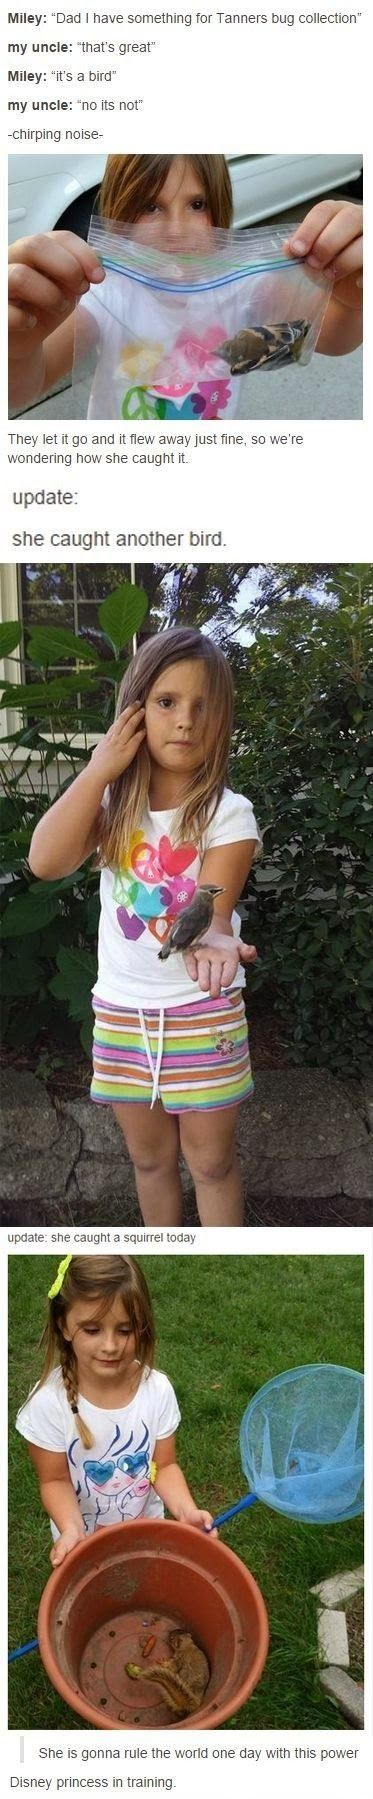 NO BUT SERIOUSLY, ANYONE REALIZE WHO THIS LIL GIRL LOOK LIKE!?!? O.O